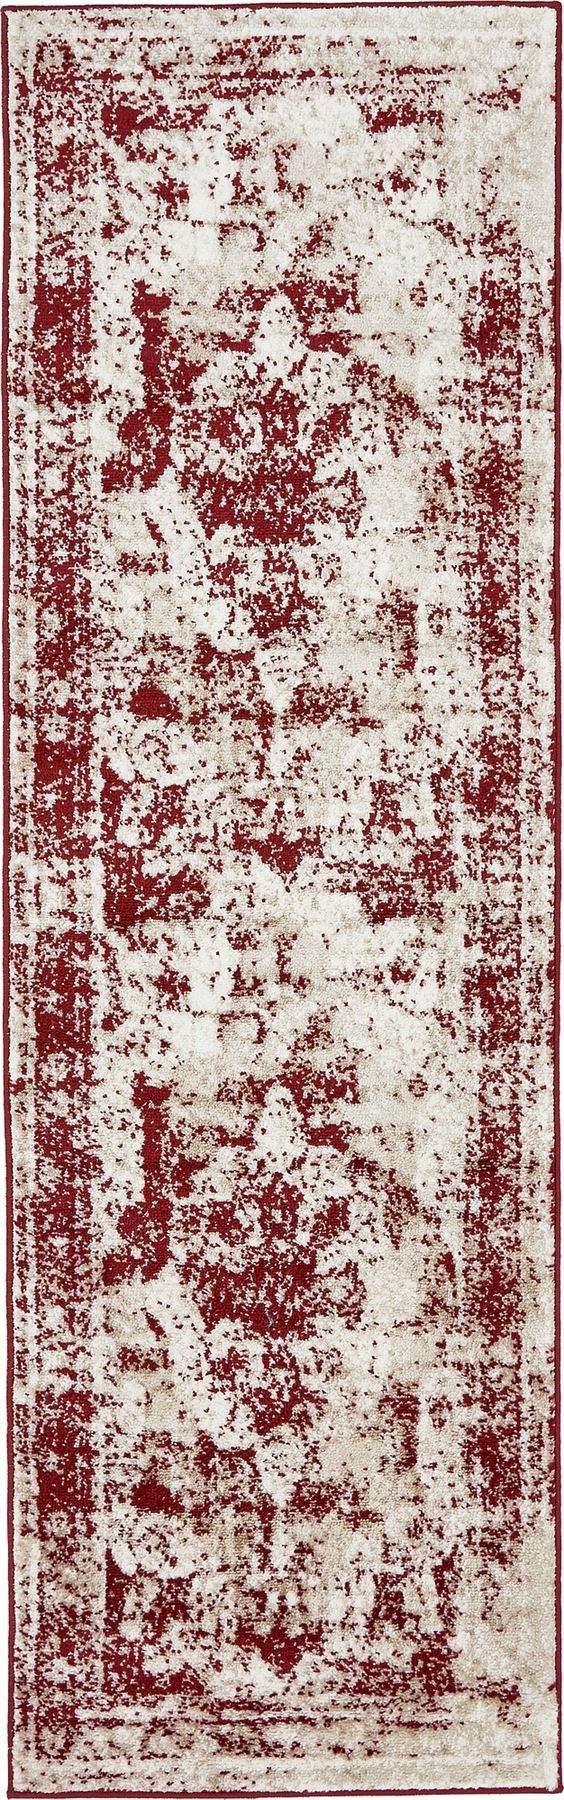 Traditional-Inspired-Persian-Faded-Transitional-Area-Rug-Multi-Color-ALL-SIZES thumbnail 18